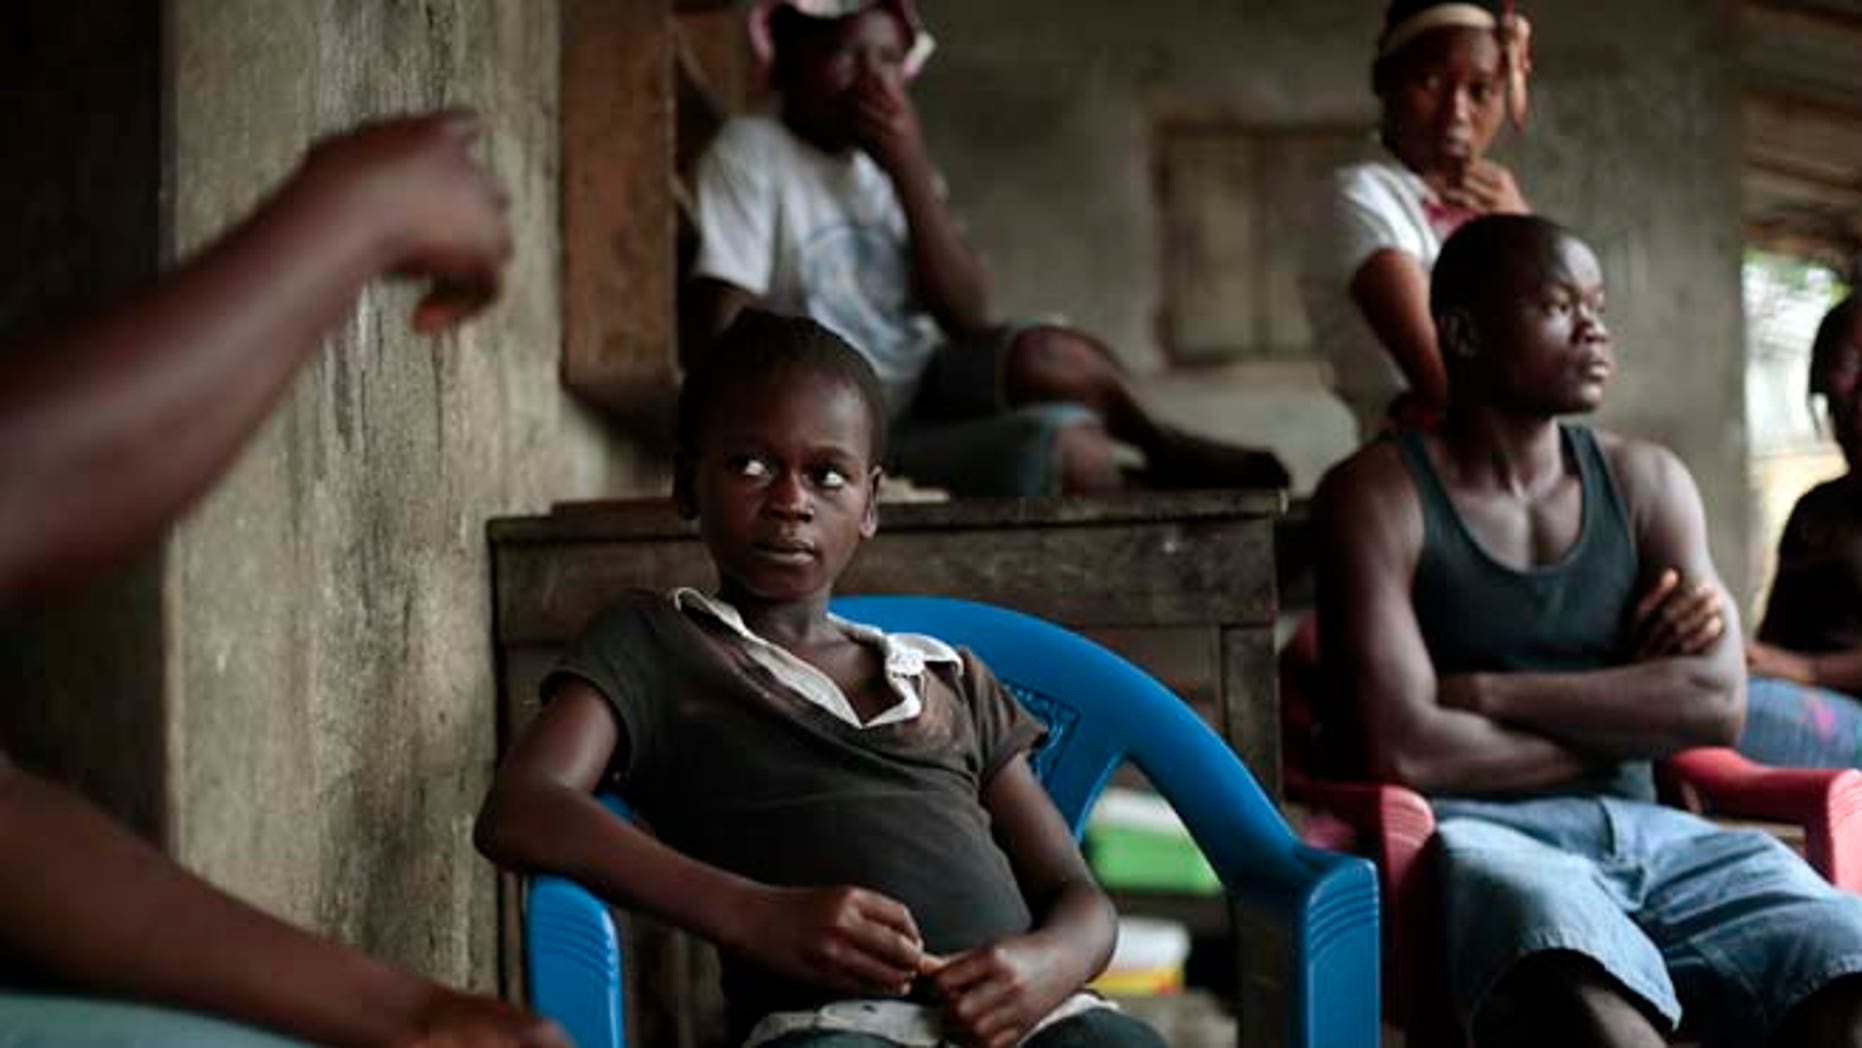 """Sept. 28, 2014: Kumba """"survivor"""" Fayiah, 11, sits with relatives in her  St Paul Bridge home in  Monrovia, Liberia. Fayah, who lost both parents and her sister, recovered from the Ebola virus and is now living with her extended family."""